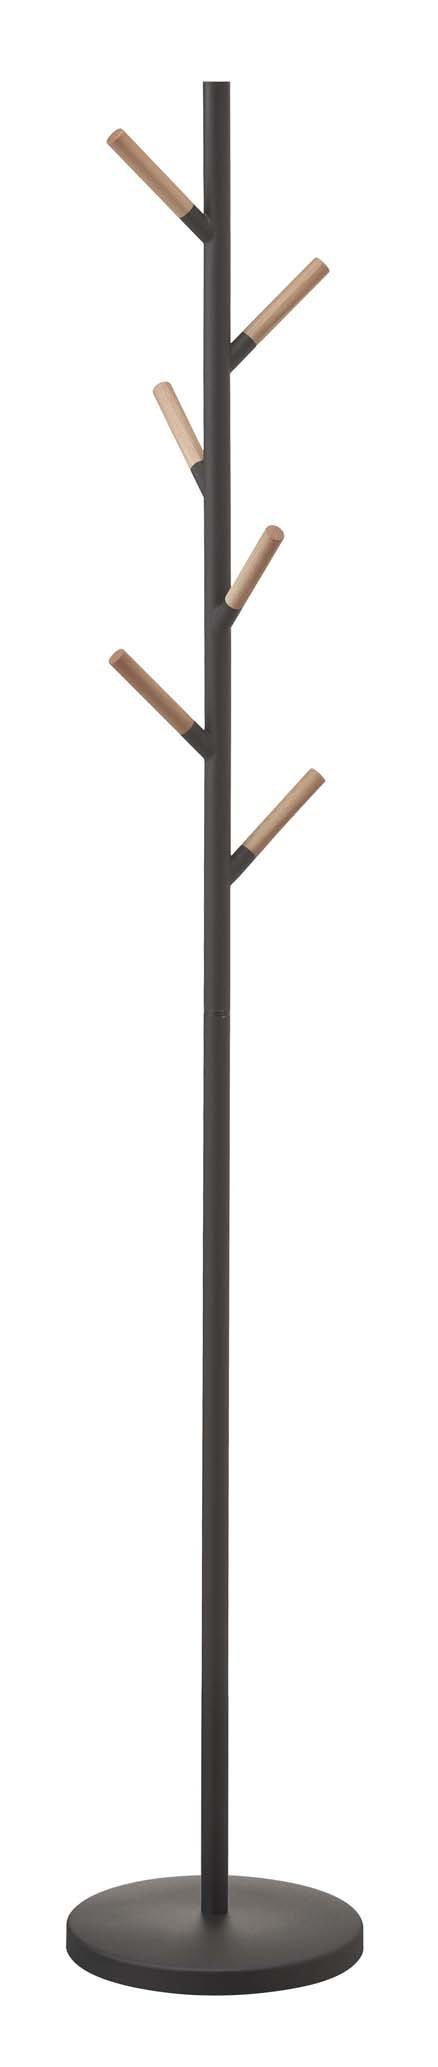 Results stainless steel wood modern coat tree rack in black finish